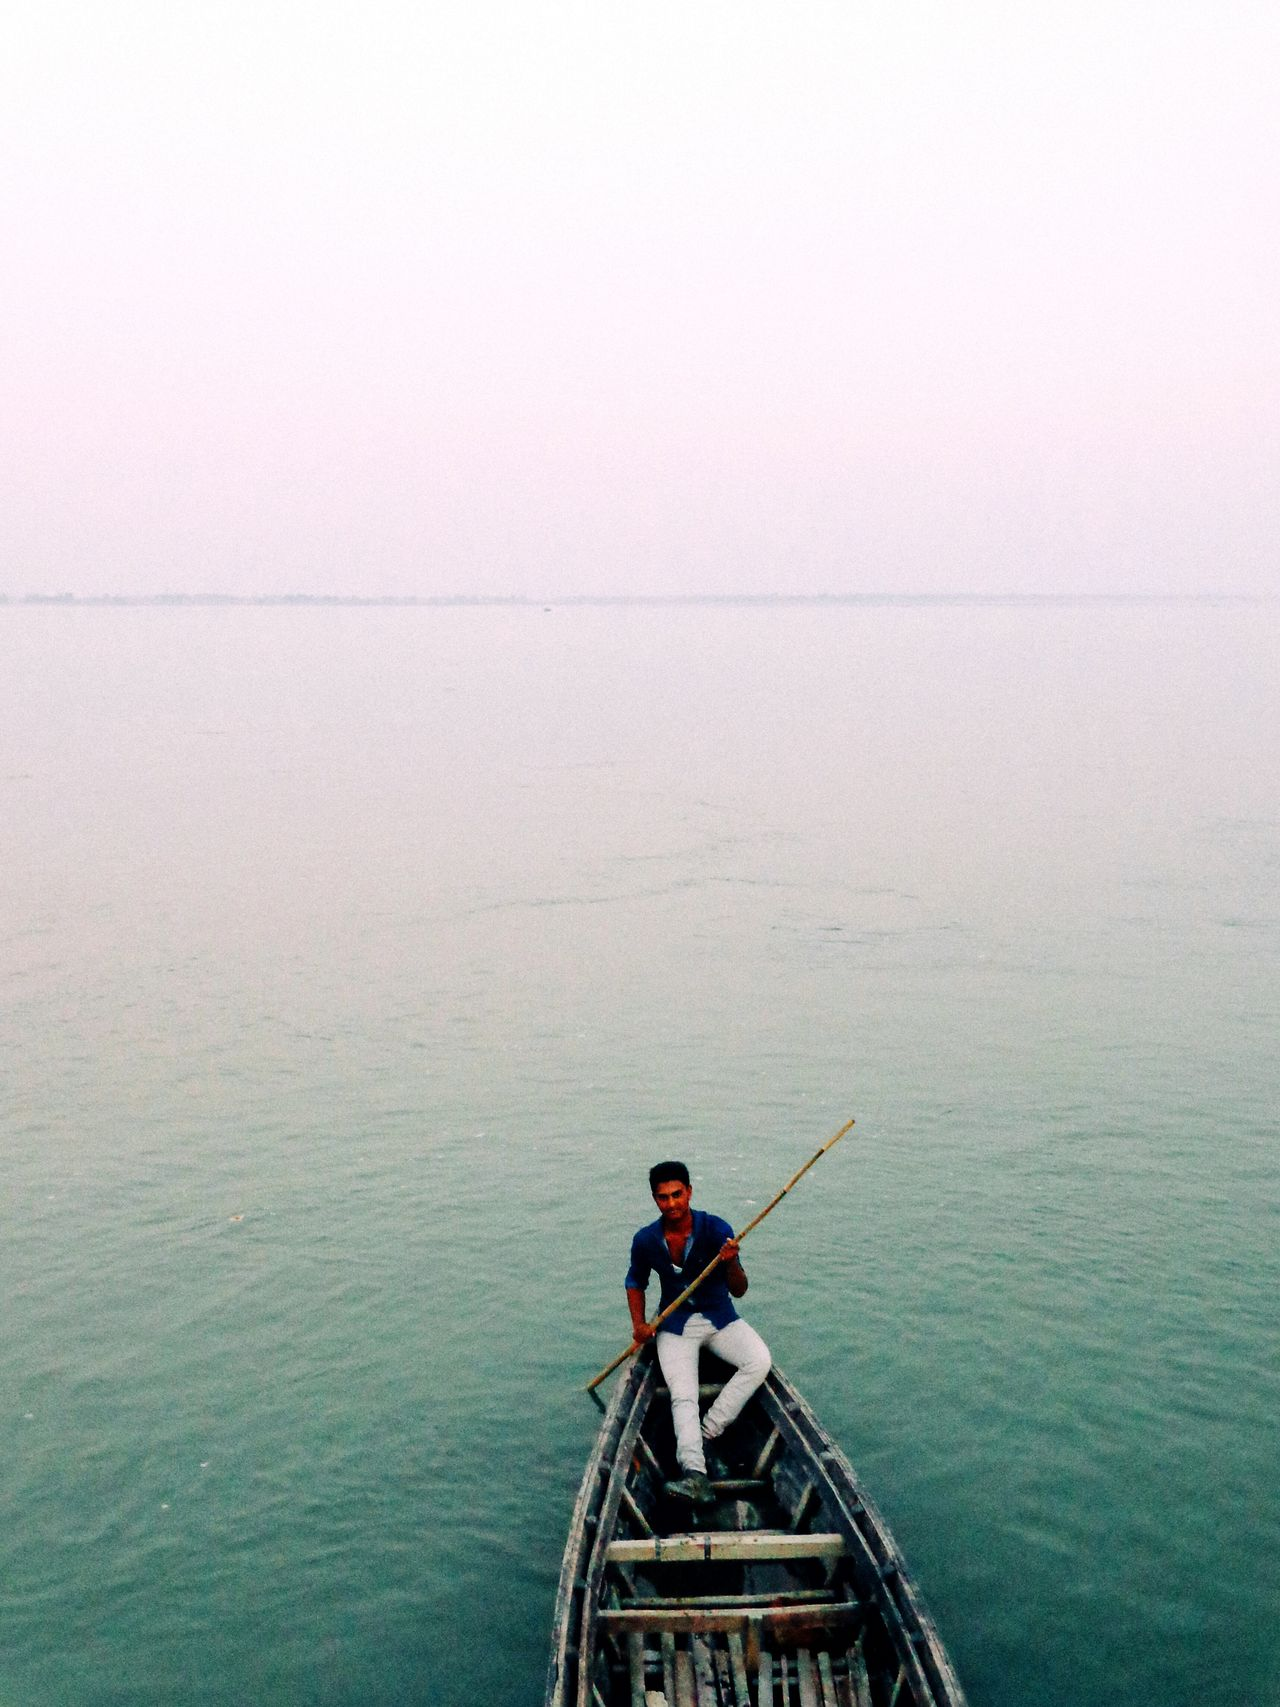 Outdoors Water Full Length One Person Only Men One Man Only Nature Sky Bangladesh Travel Photography Traveling The World Travelling Travel Water Surface Waterscape Traveling Photography Traveling Boat Travelling Photography Travelgram Travelphotography Traveler EyeEm Travel Photography EyeEm Traveling